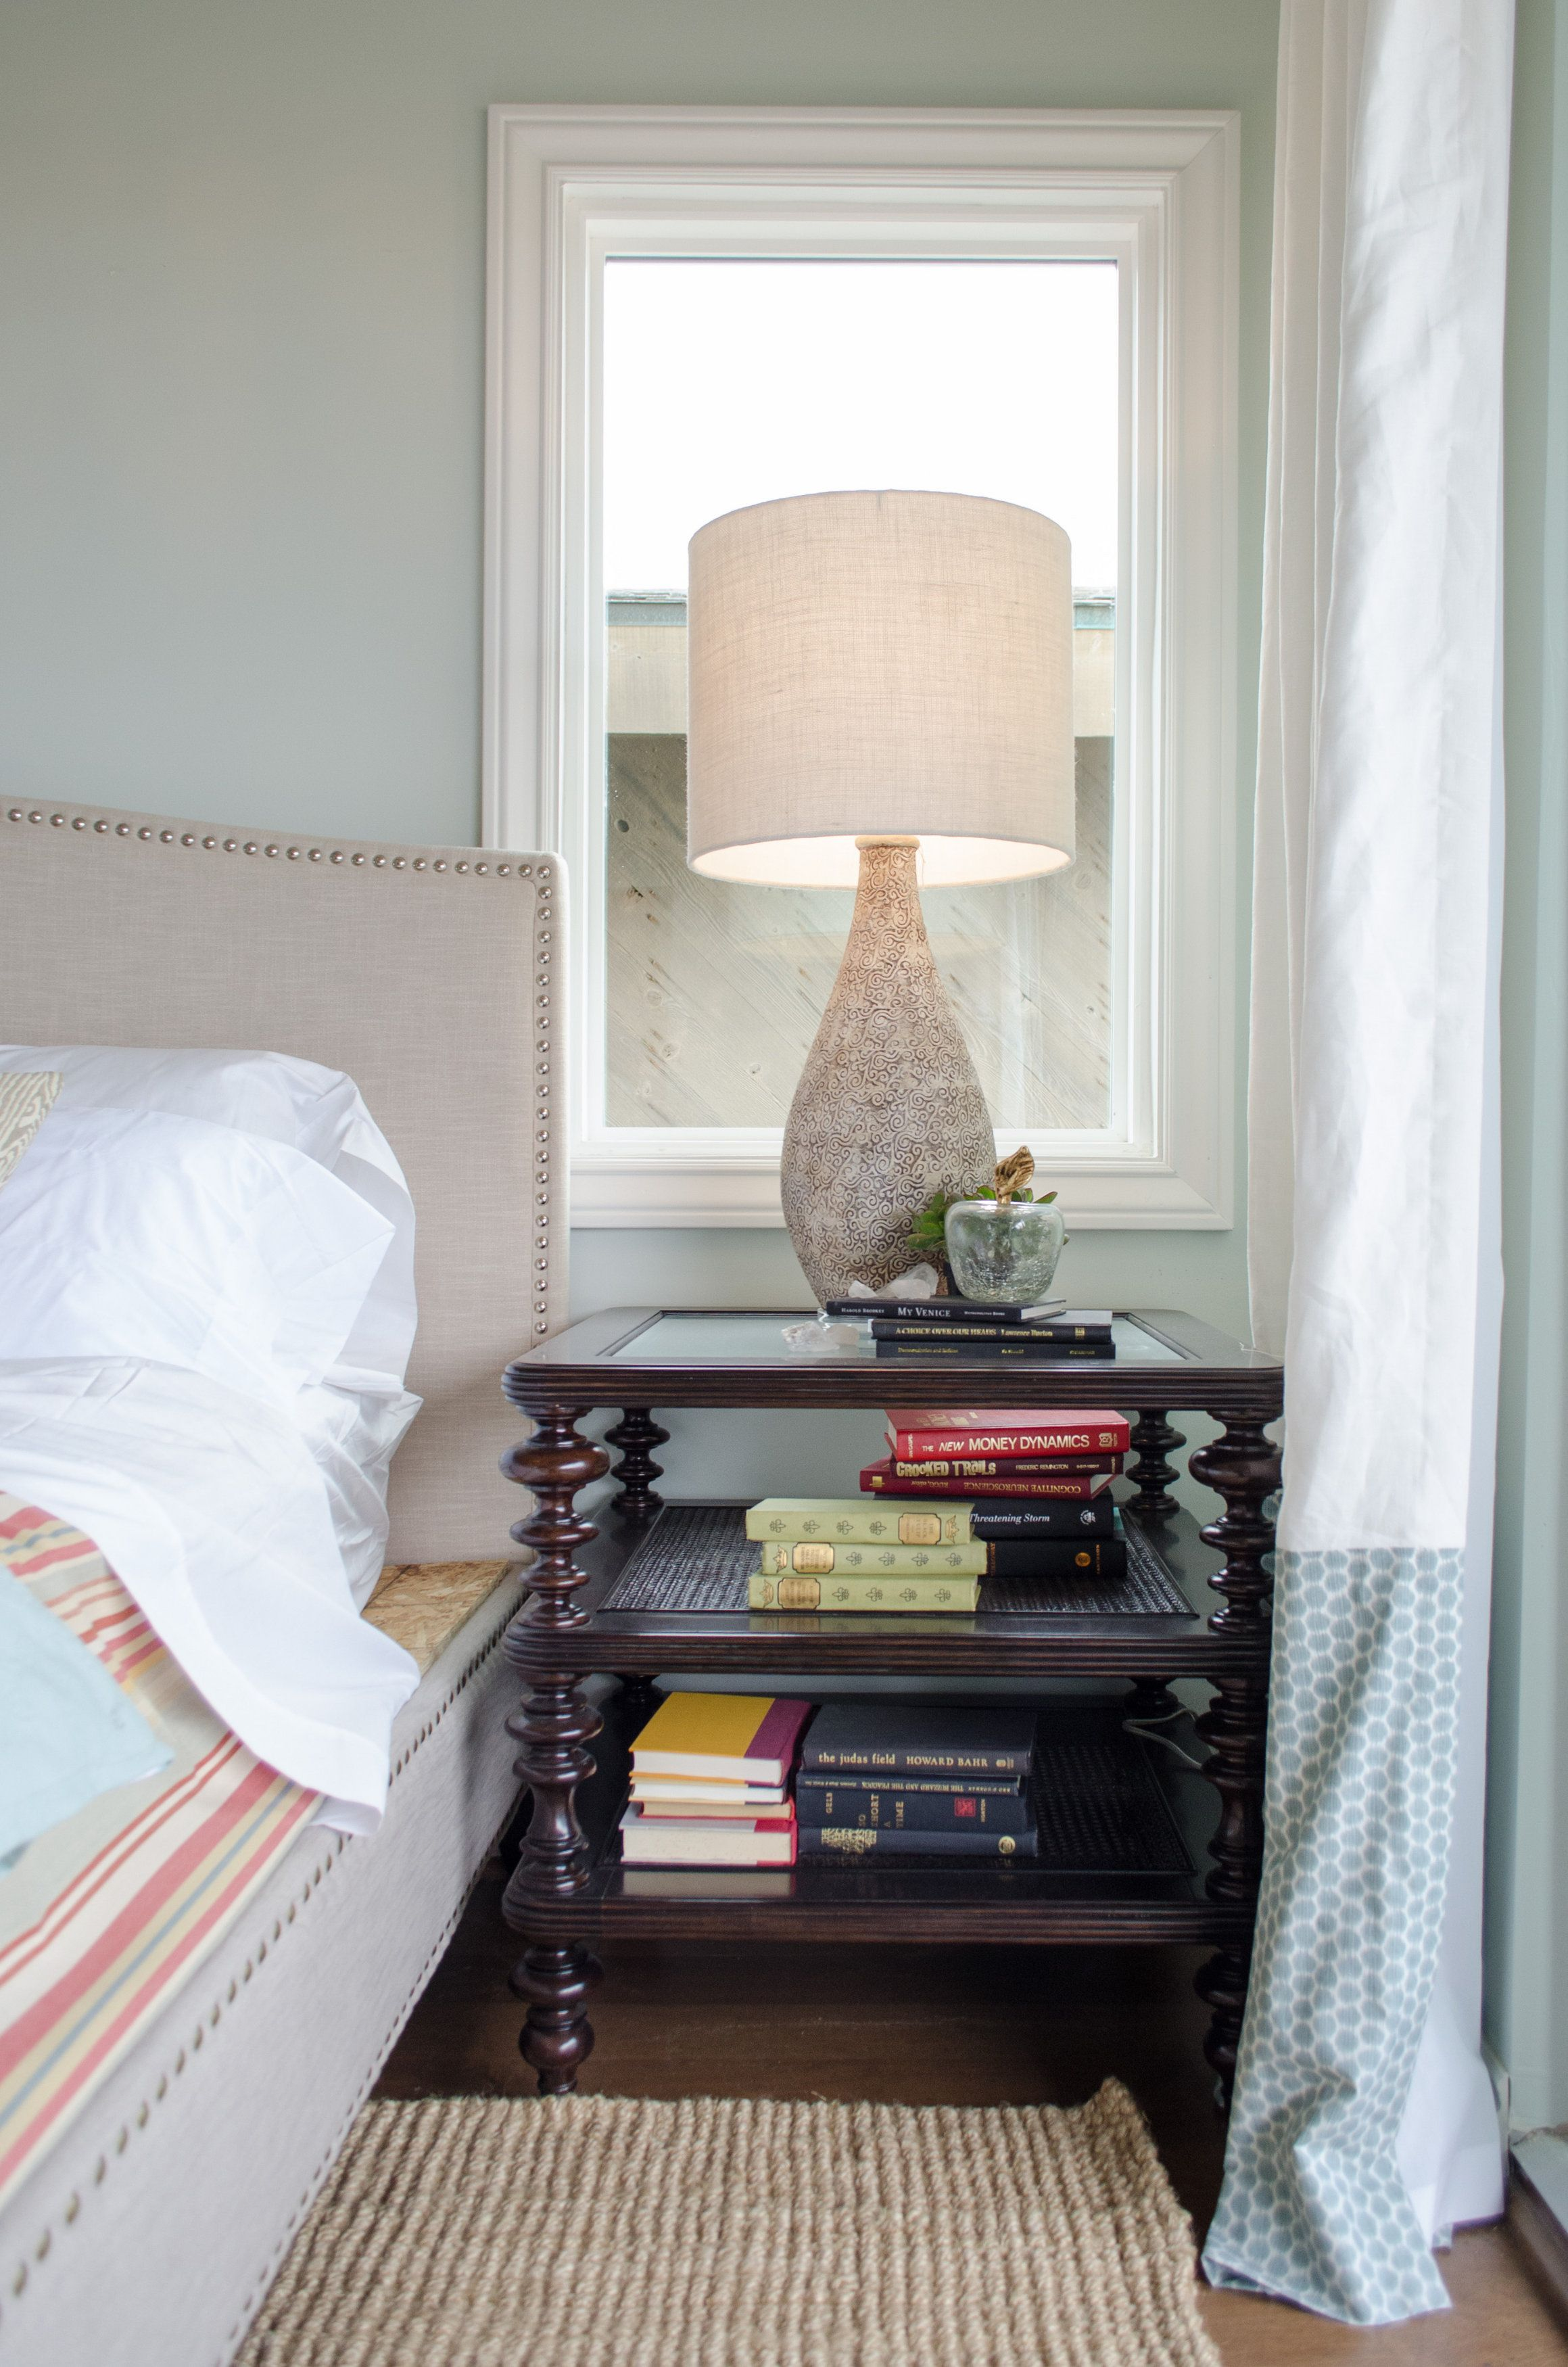 Mirrors Behind Bedside Tables: Put Mirrors Behind Bedside Tables If You Don't Have